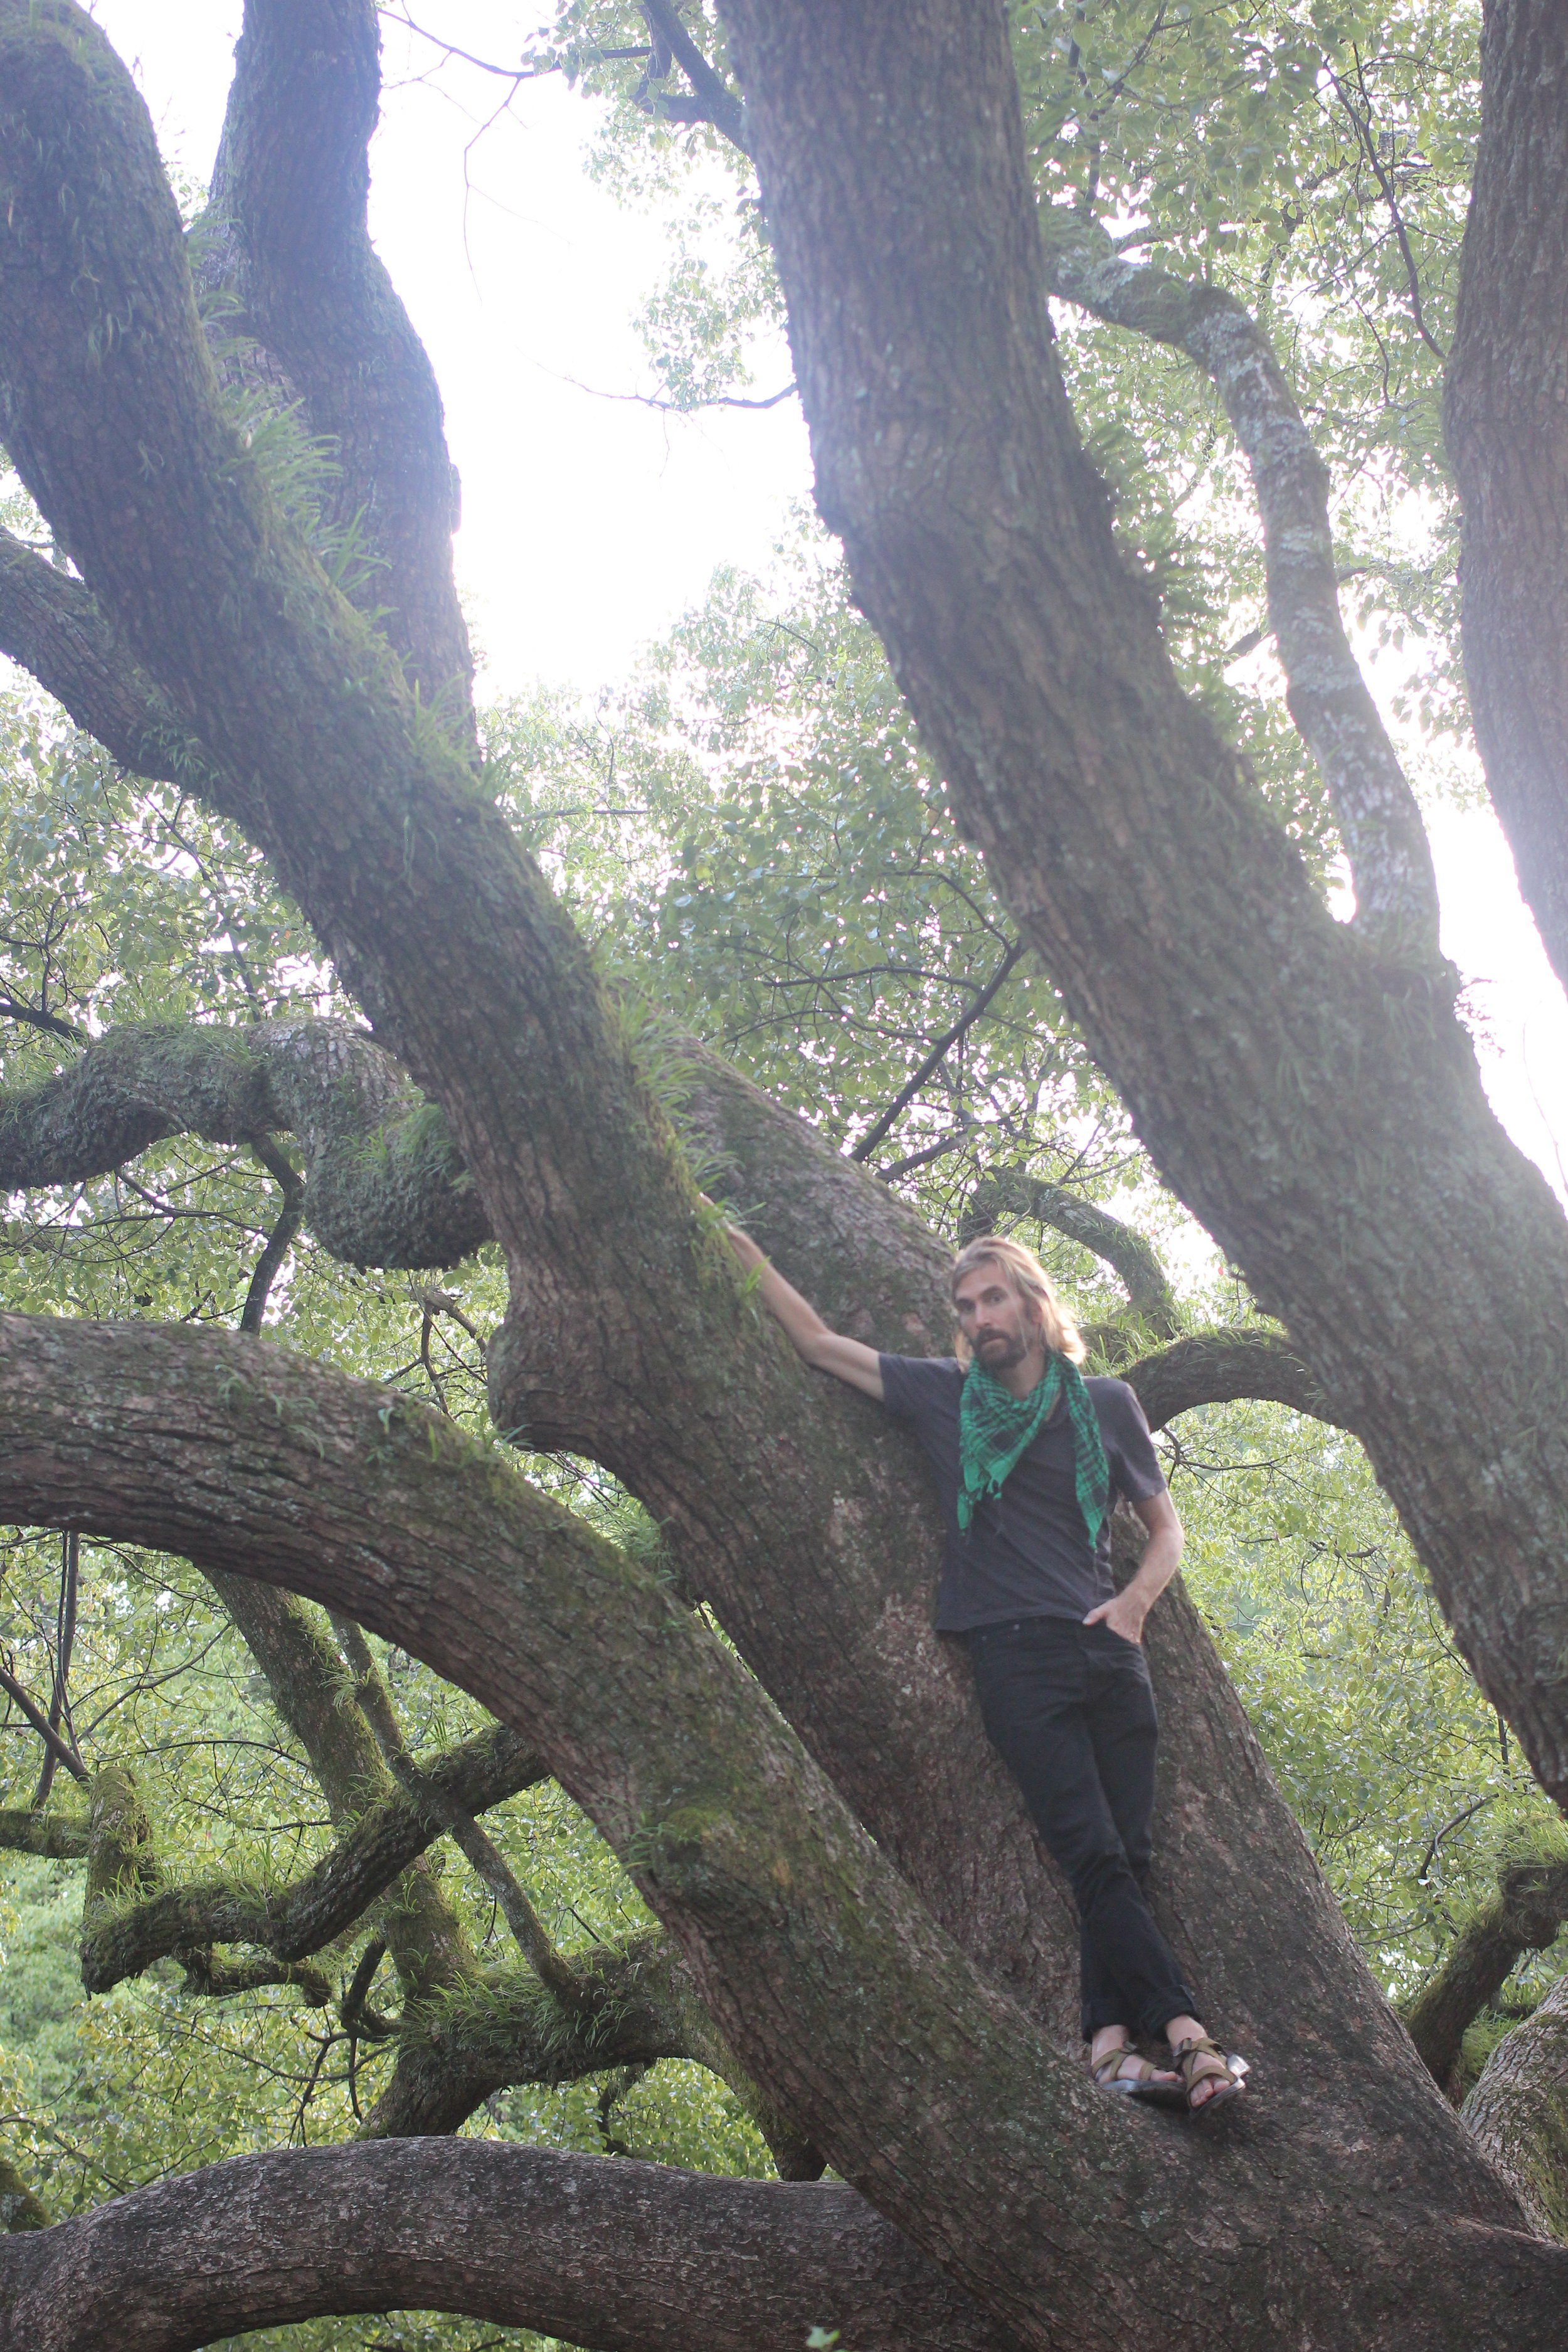 Wylie in his element: in a tree.